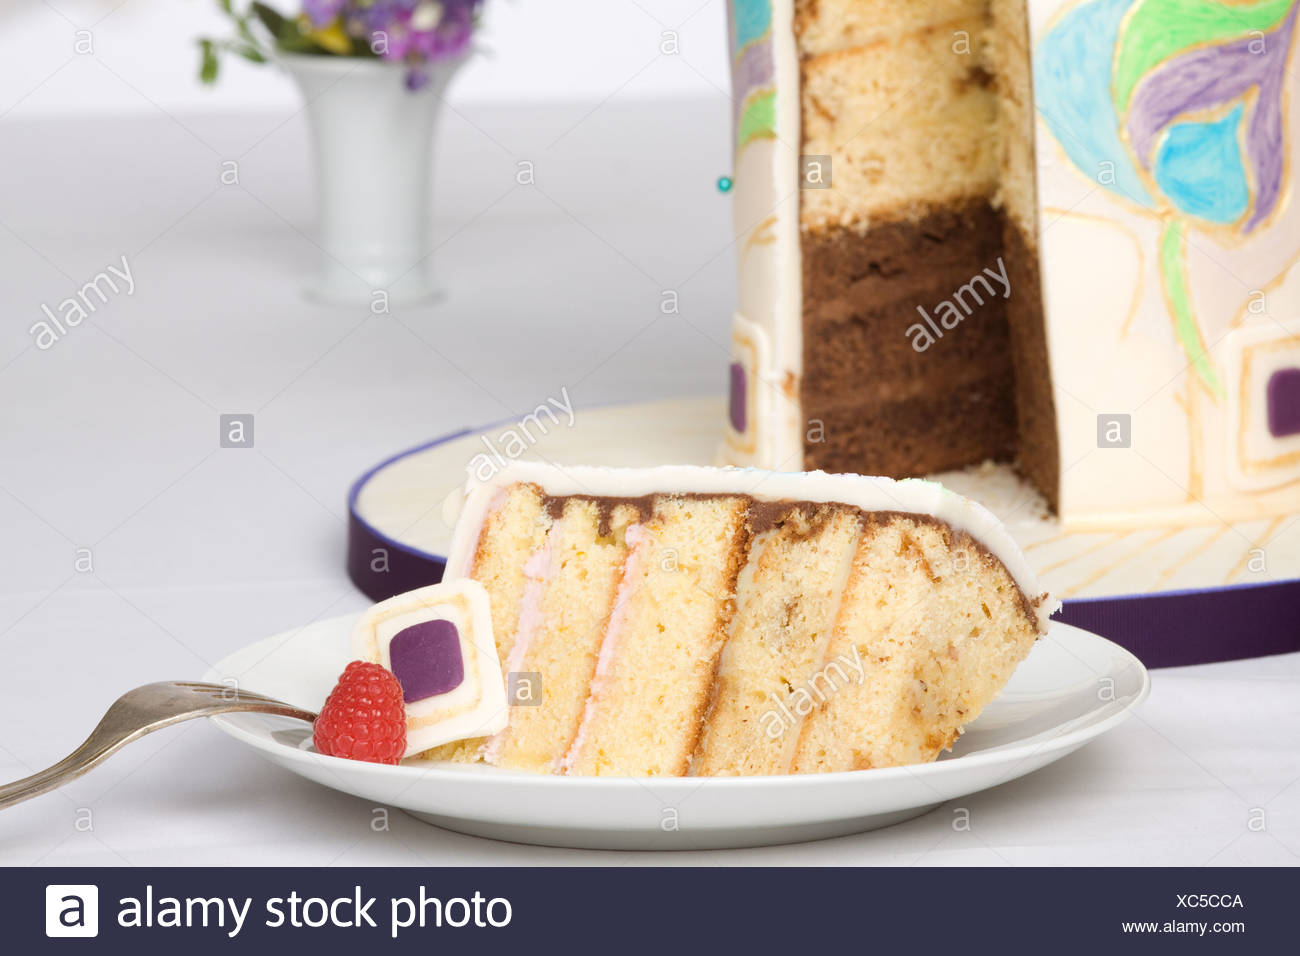 Wedding cake with marzipan coating and decoration Stock Photo ...